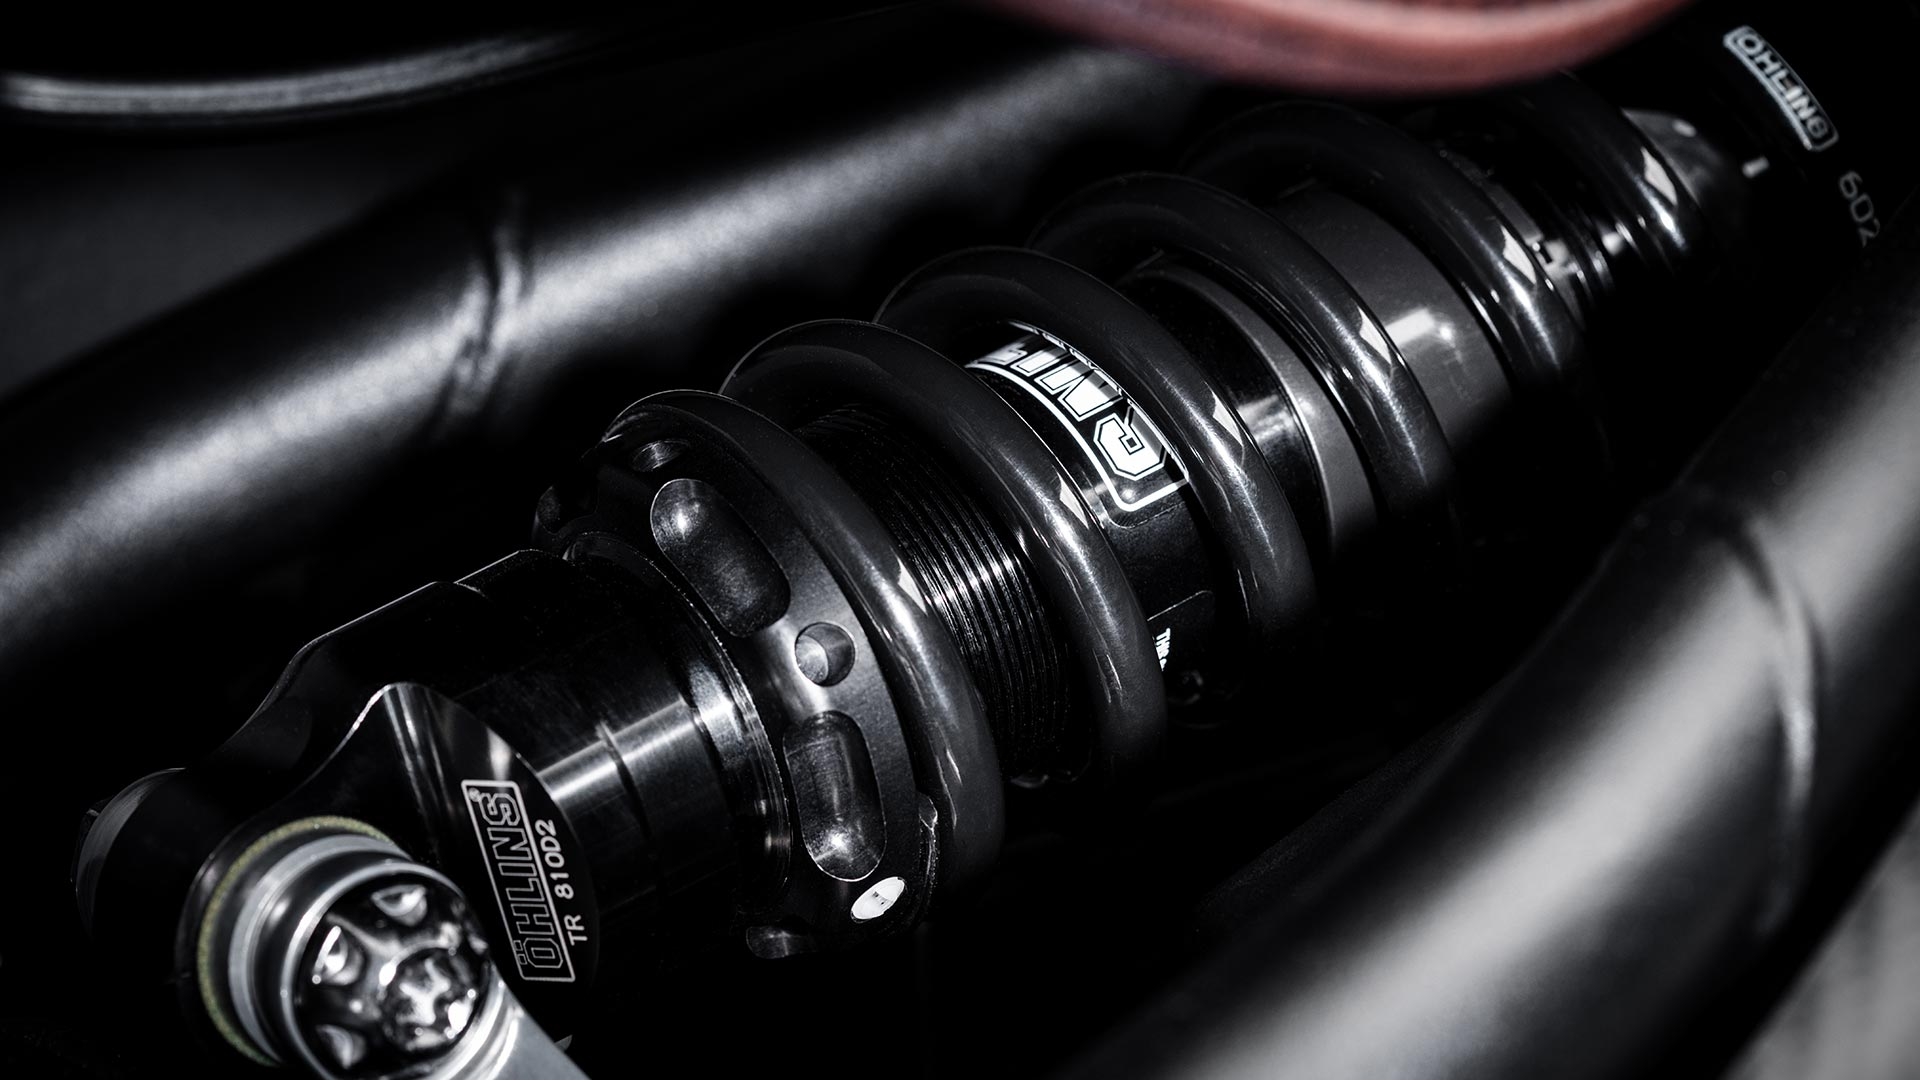 Close-up shot of the Triumph Bobber TFC's premium Öhlins rear suspension